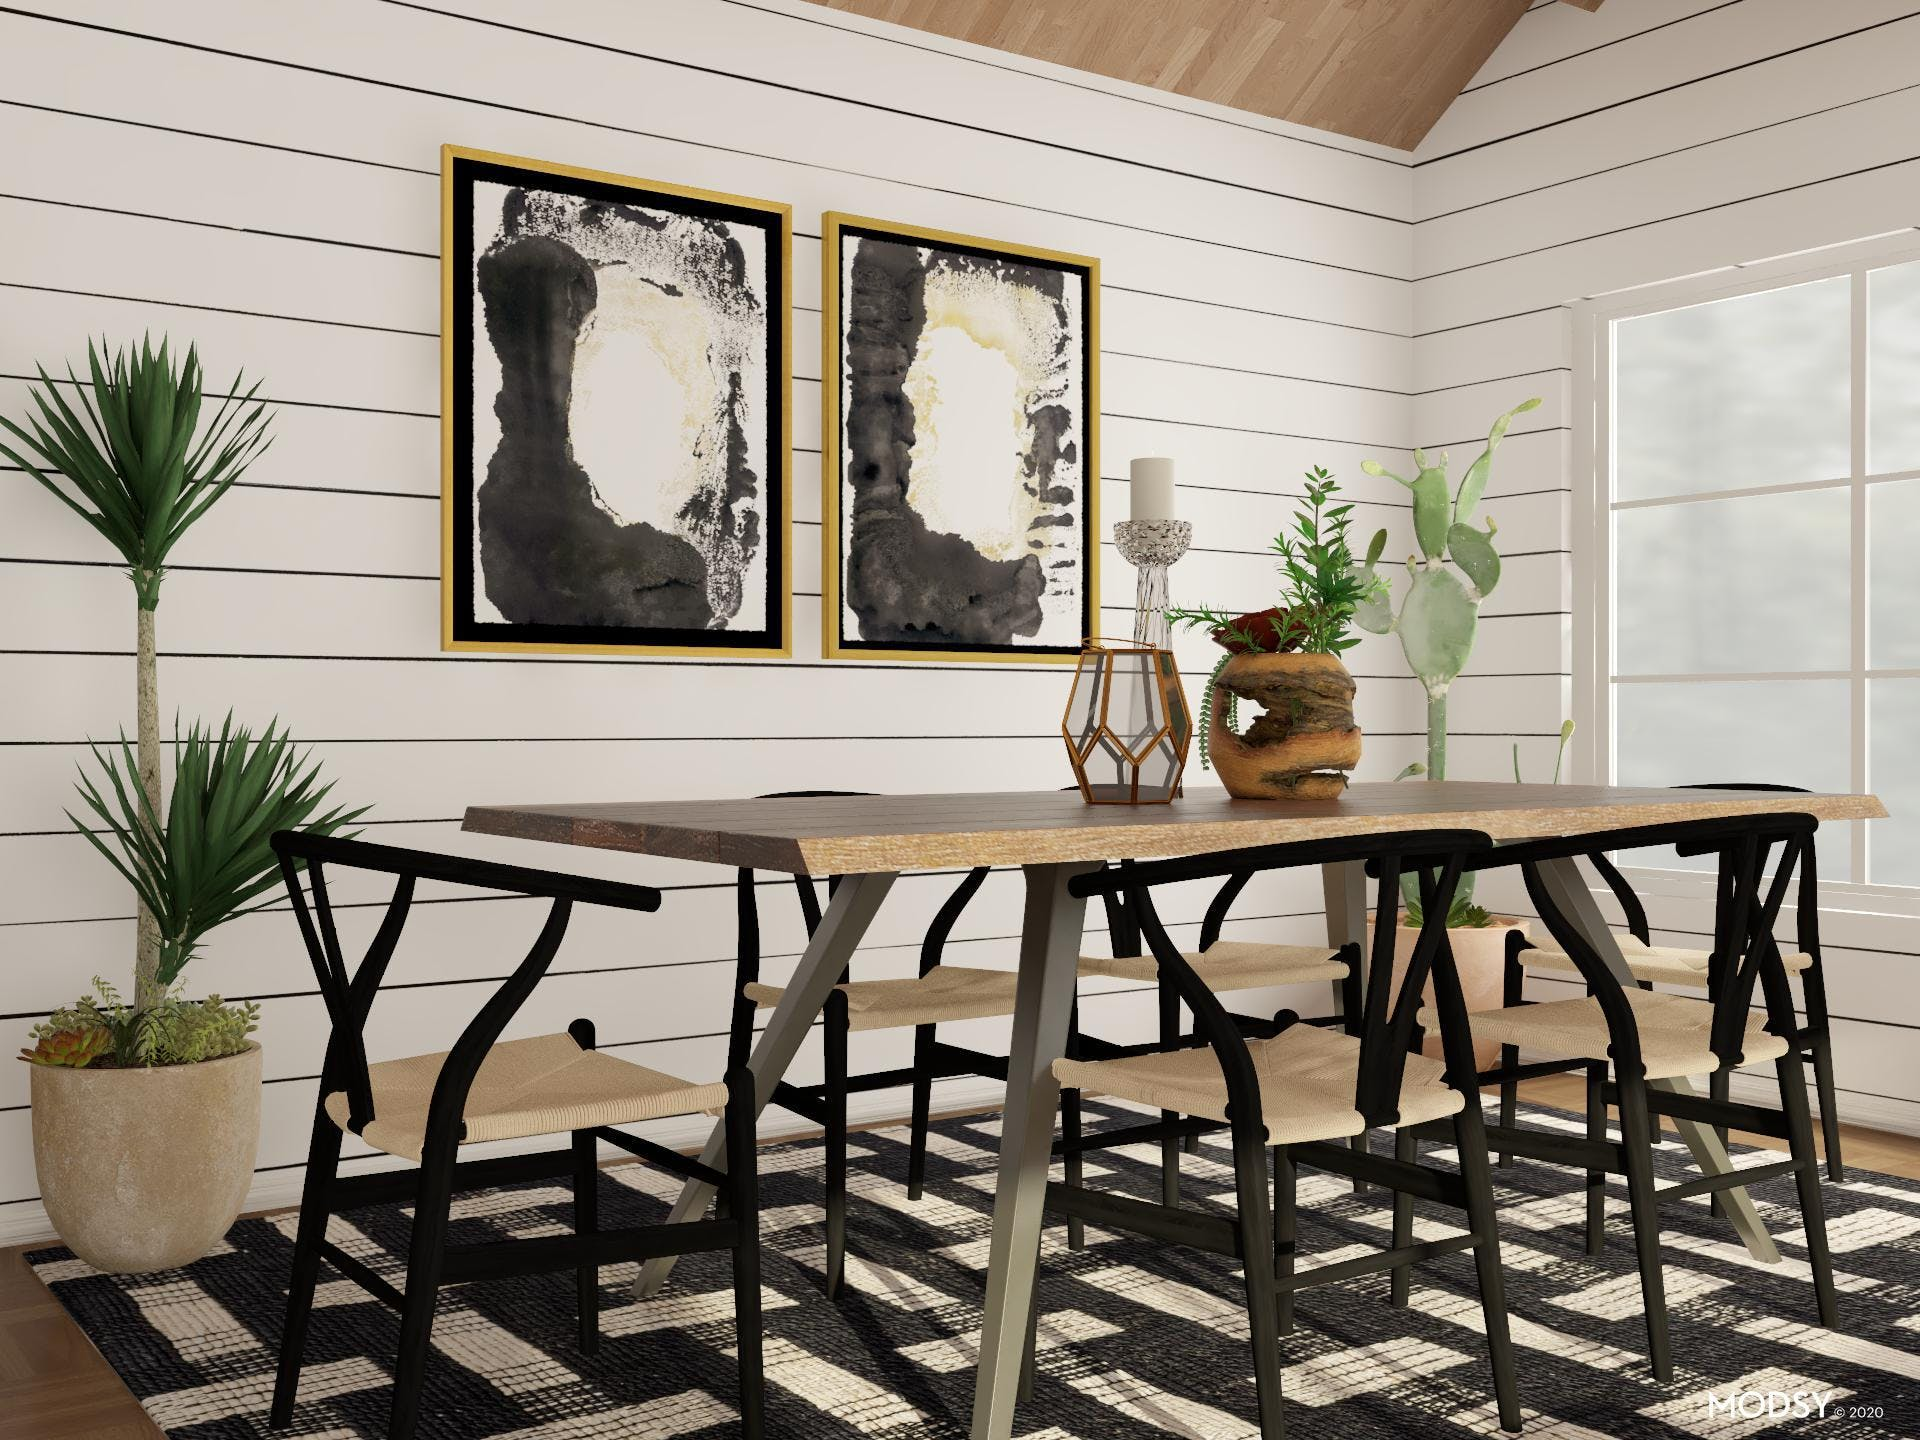 Fall in love with this B&W Eclectic Dining Room